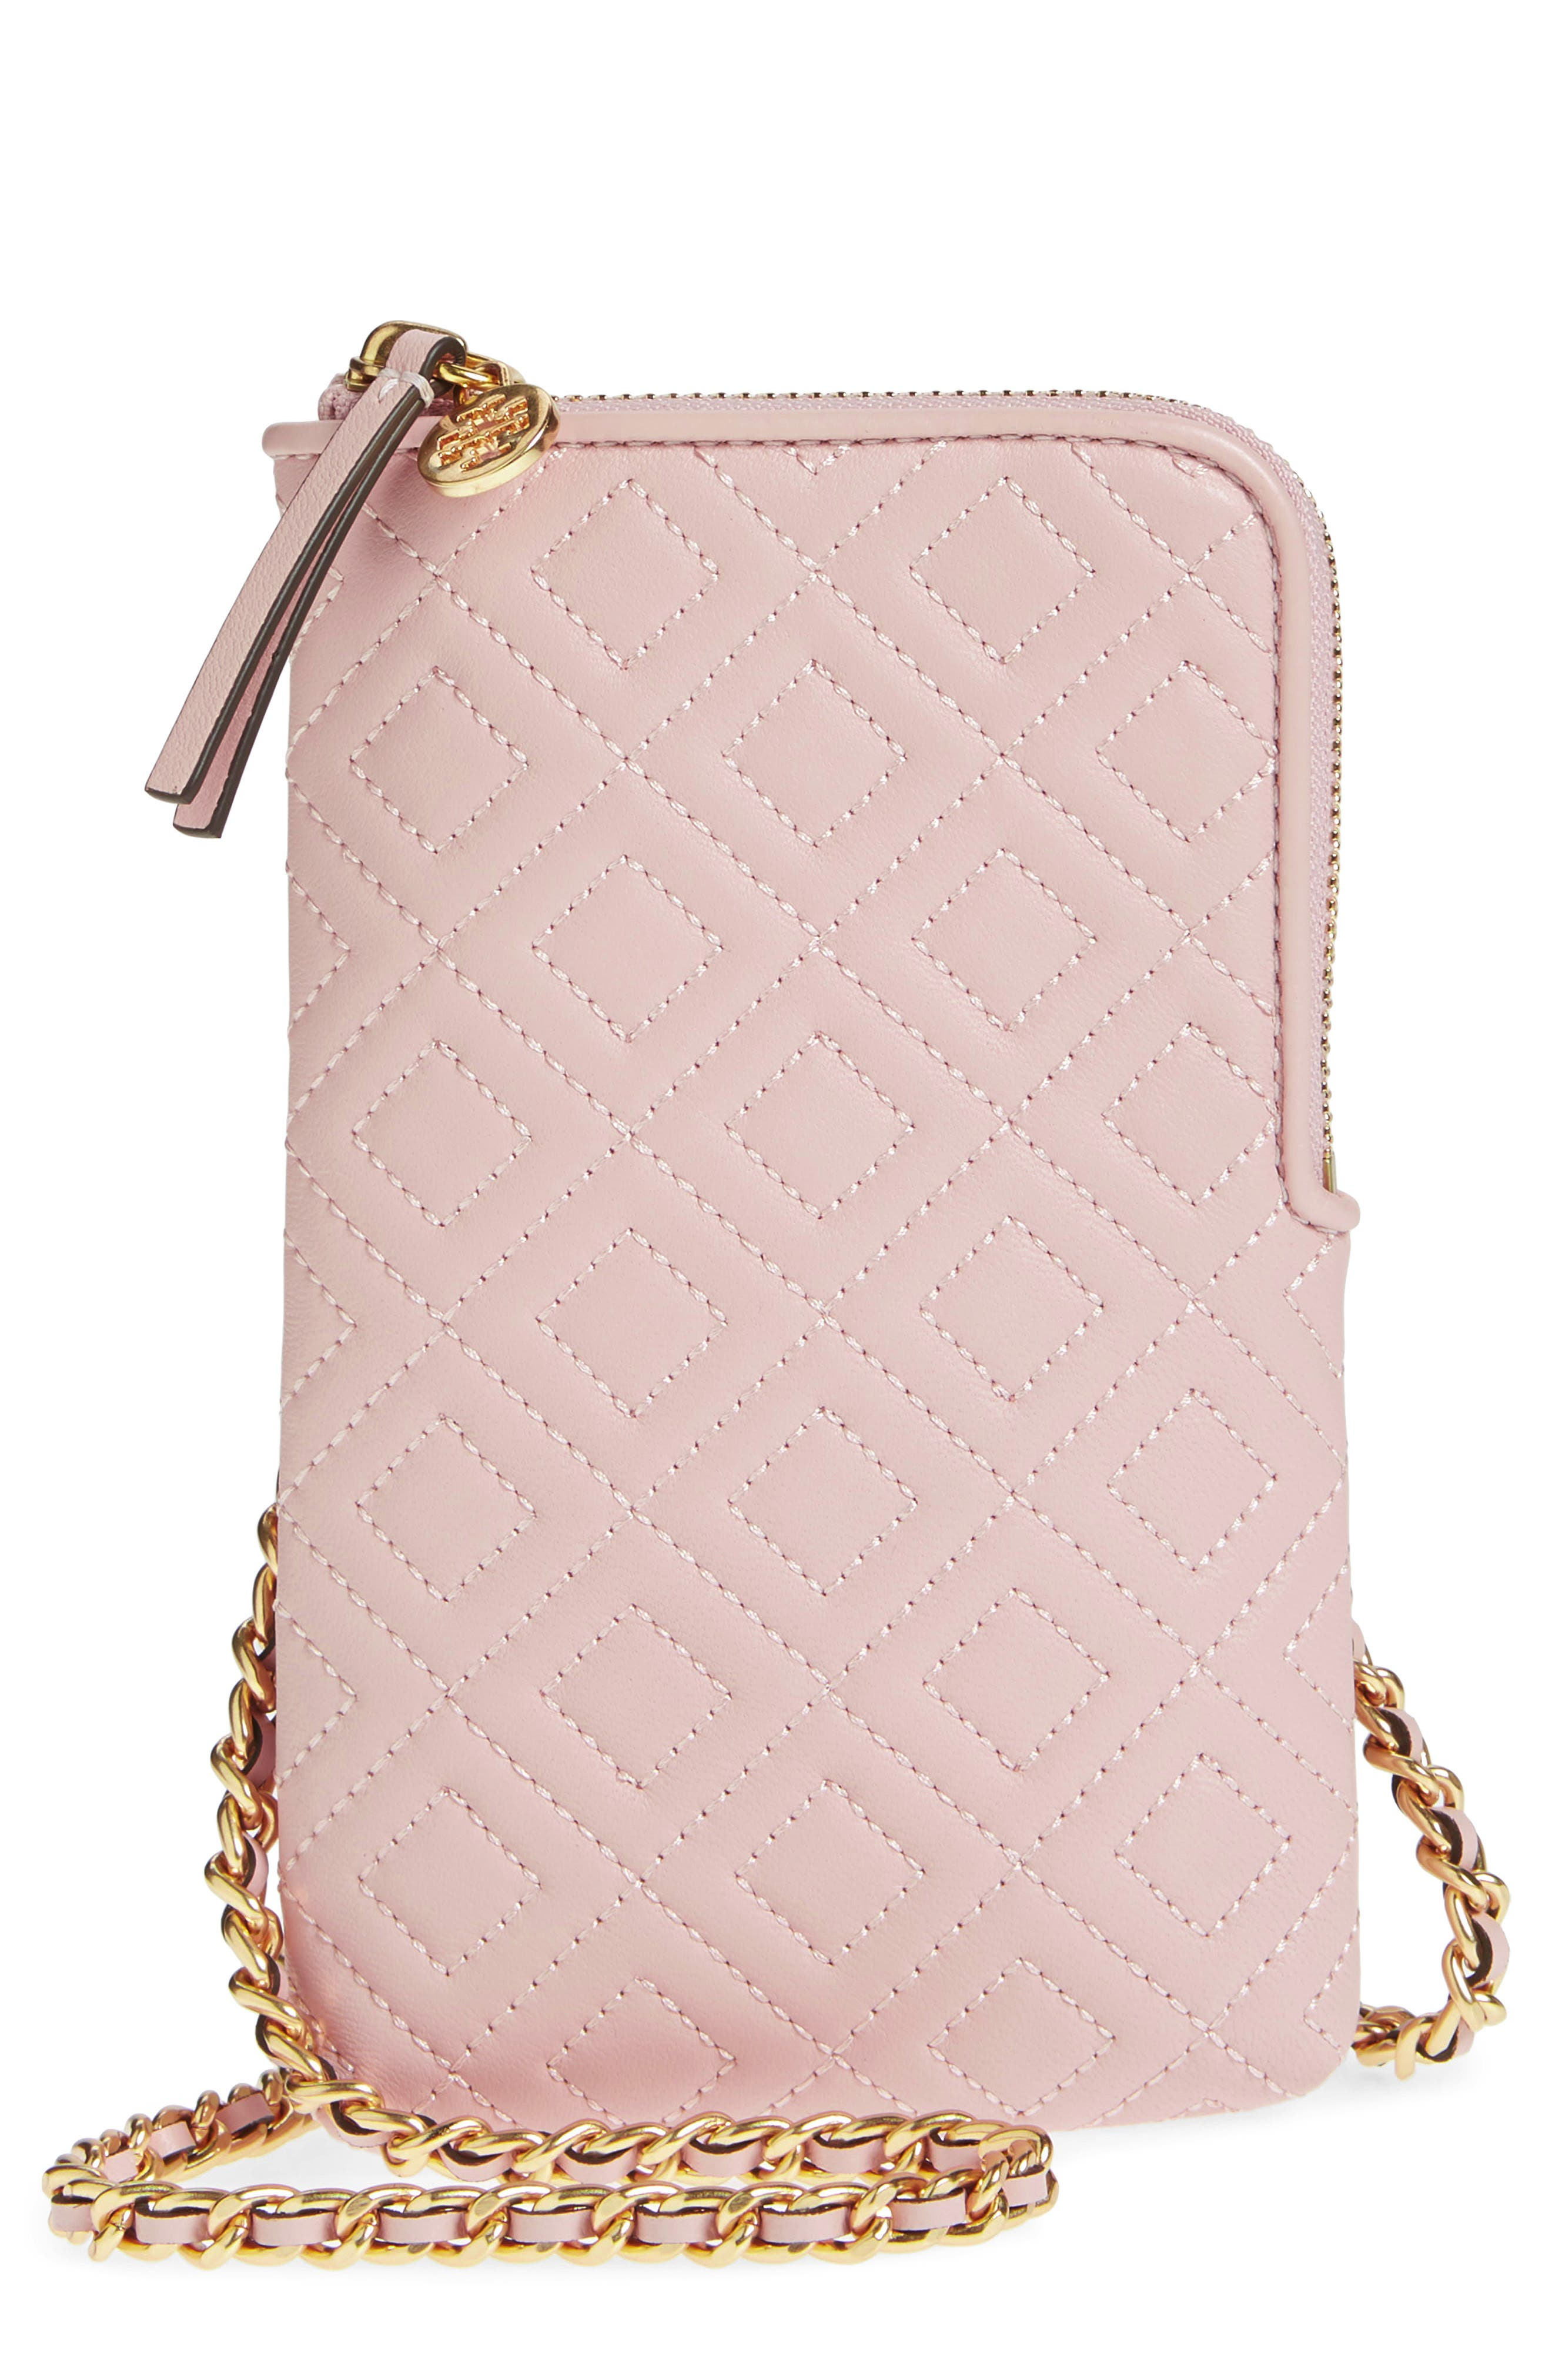 Fleming Lambskin Leather Phone Crossbody Bag,                             Main thumbnail 1, color,                             SHELL PINK